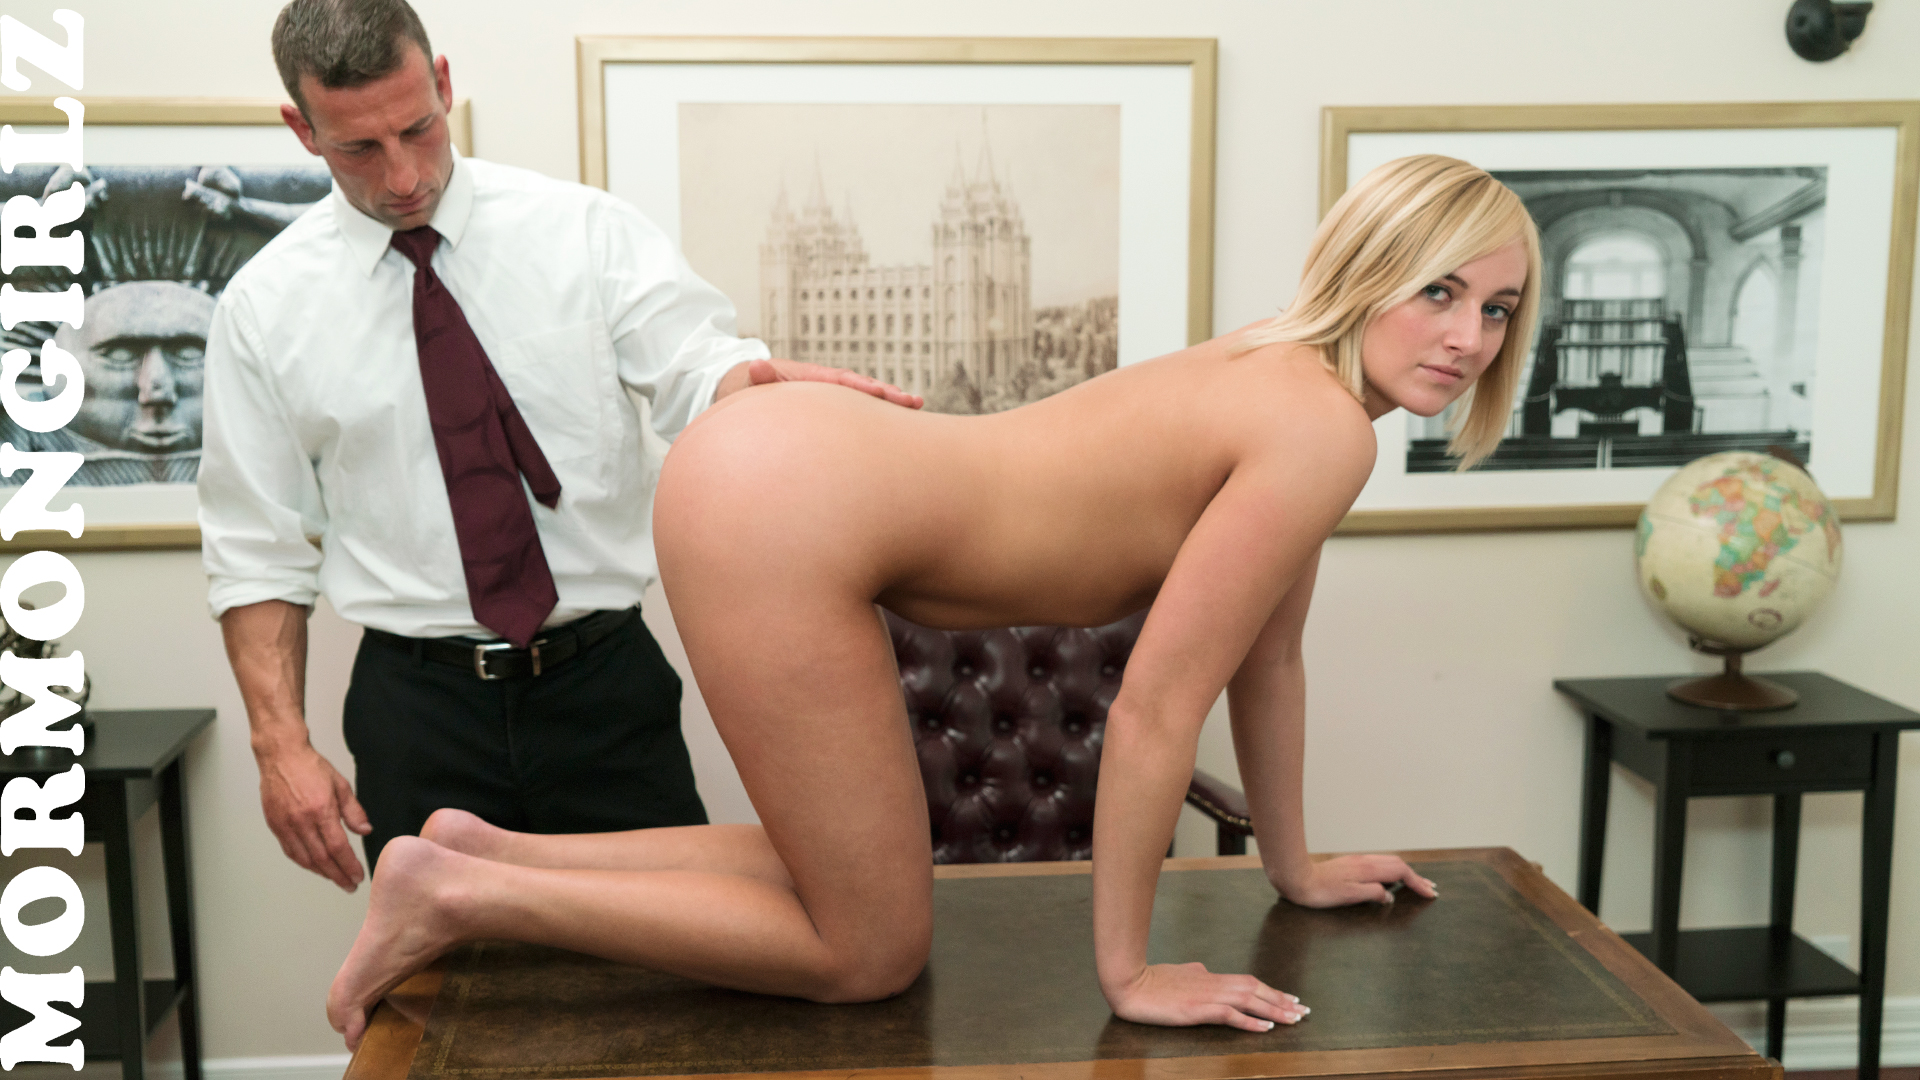 pearl gets her tiny virgin mumu examined by father ludacris #8